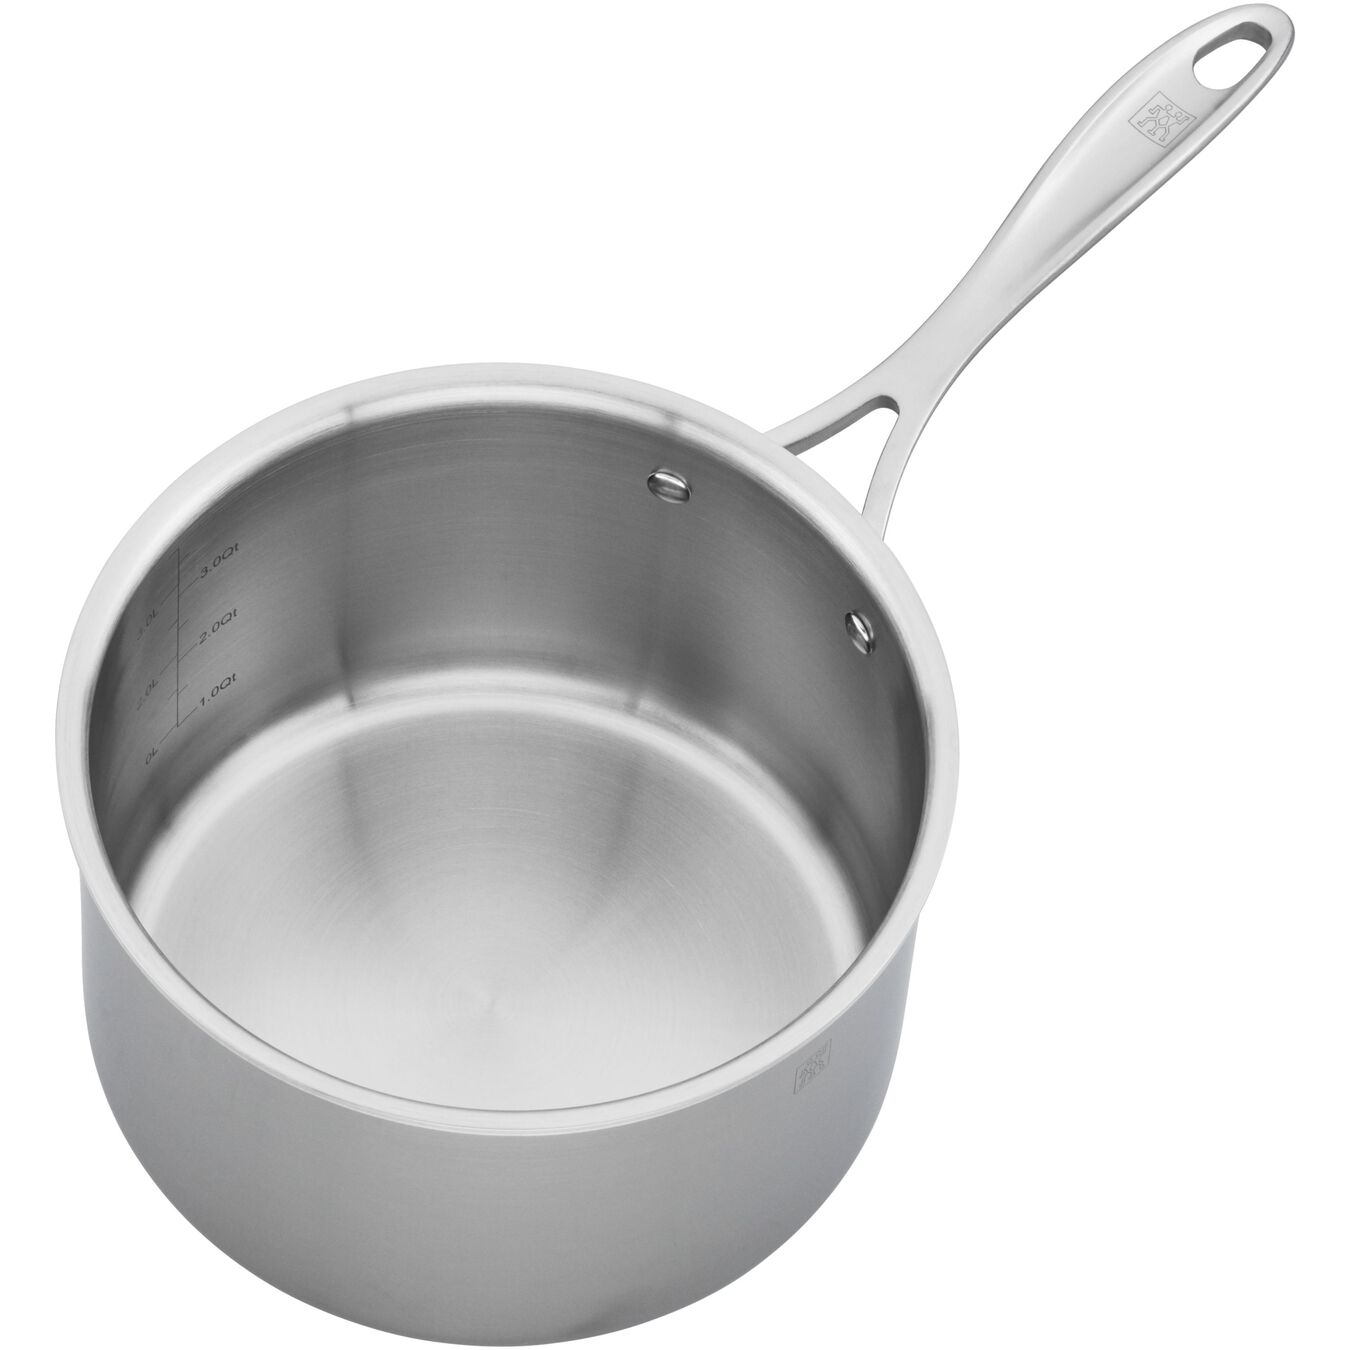 3-ply 4-qt Stainless Steel Saucepan,,large 3